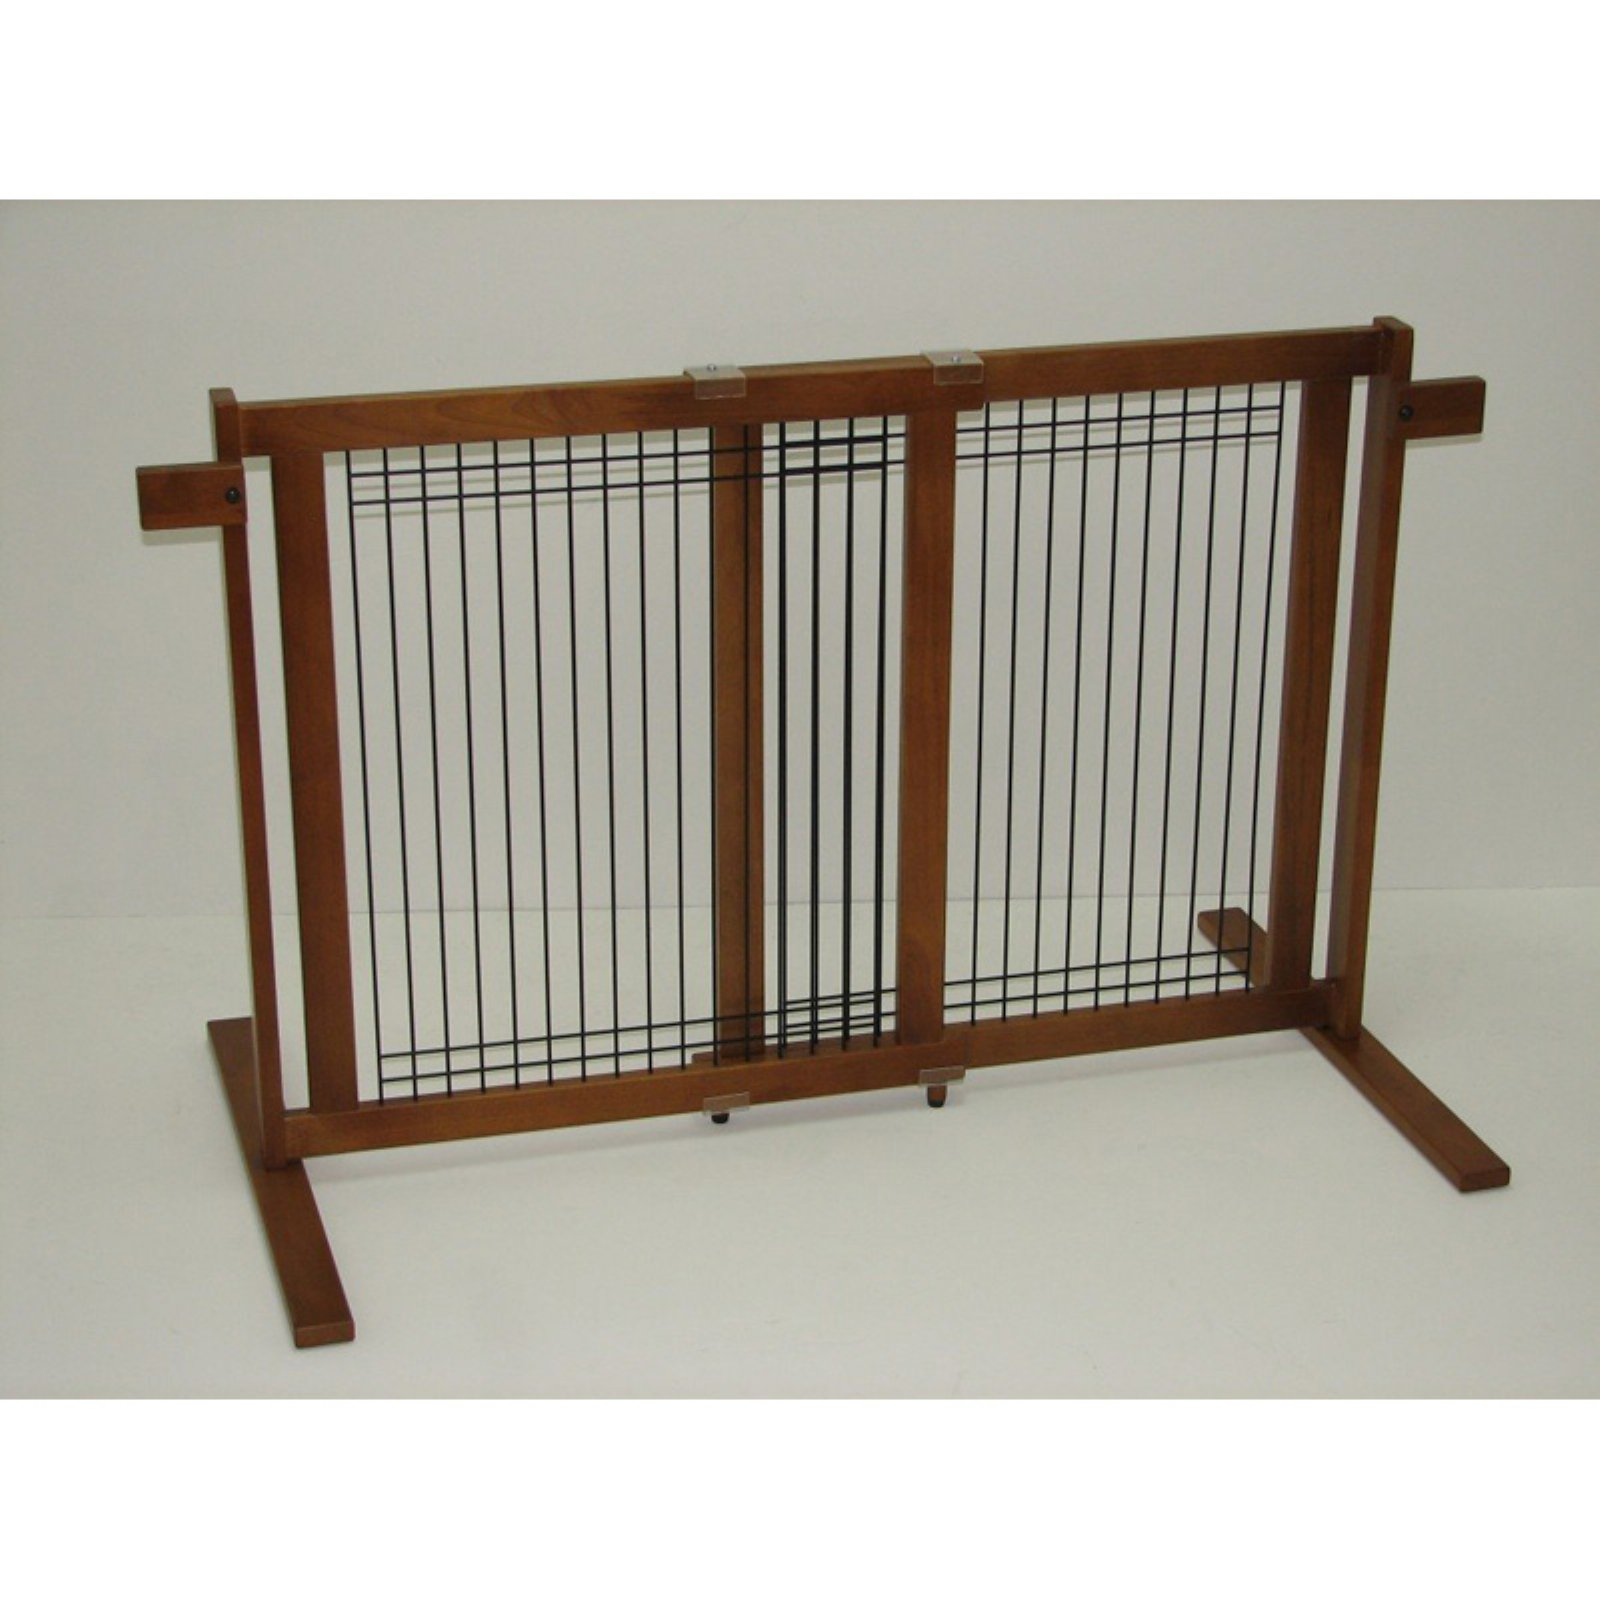 Color Pet Crown Pet Freestanding Wood/wire Pet Gate With Security Arms, Small Sp